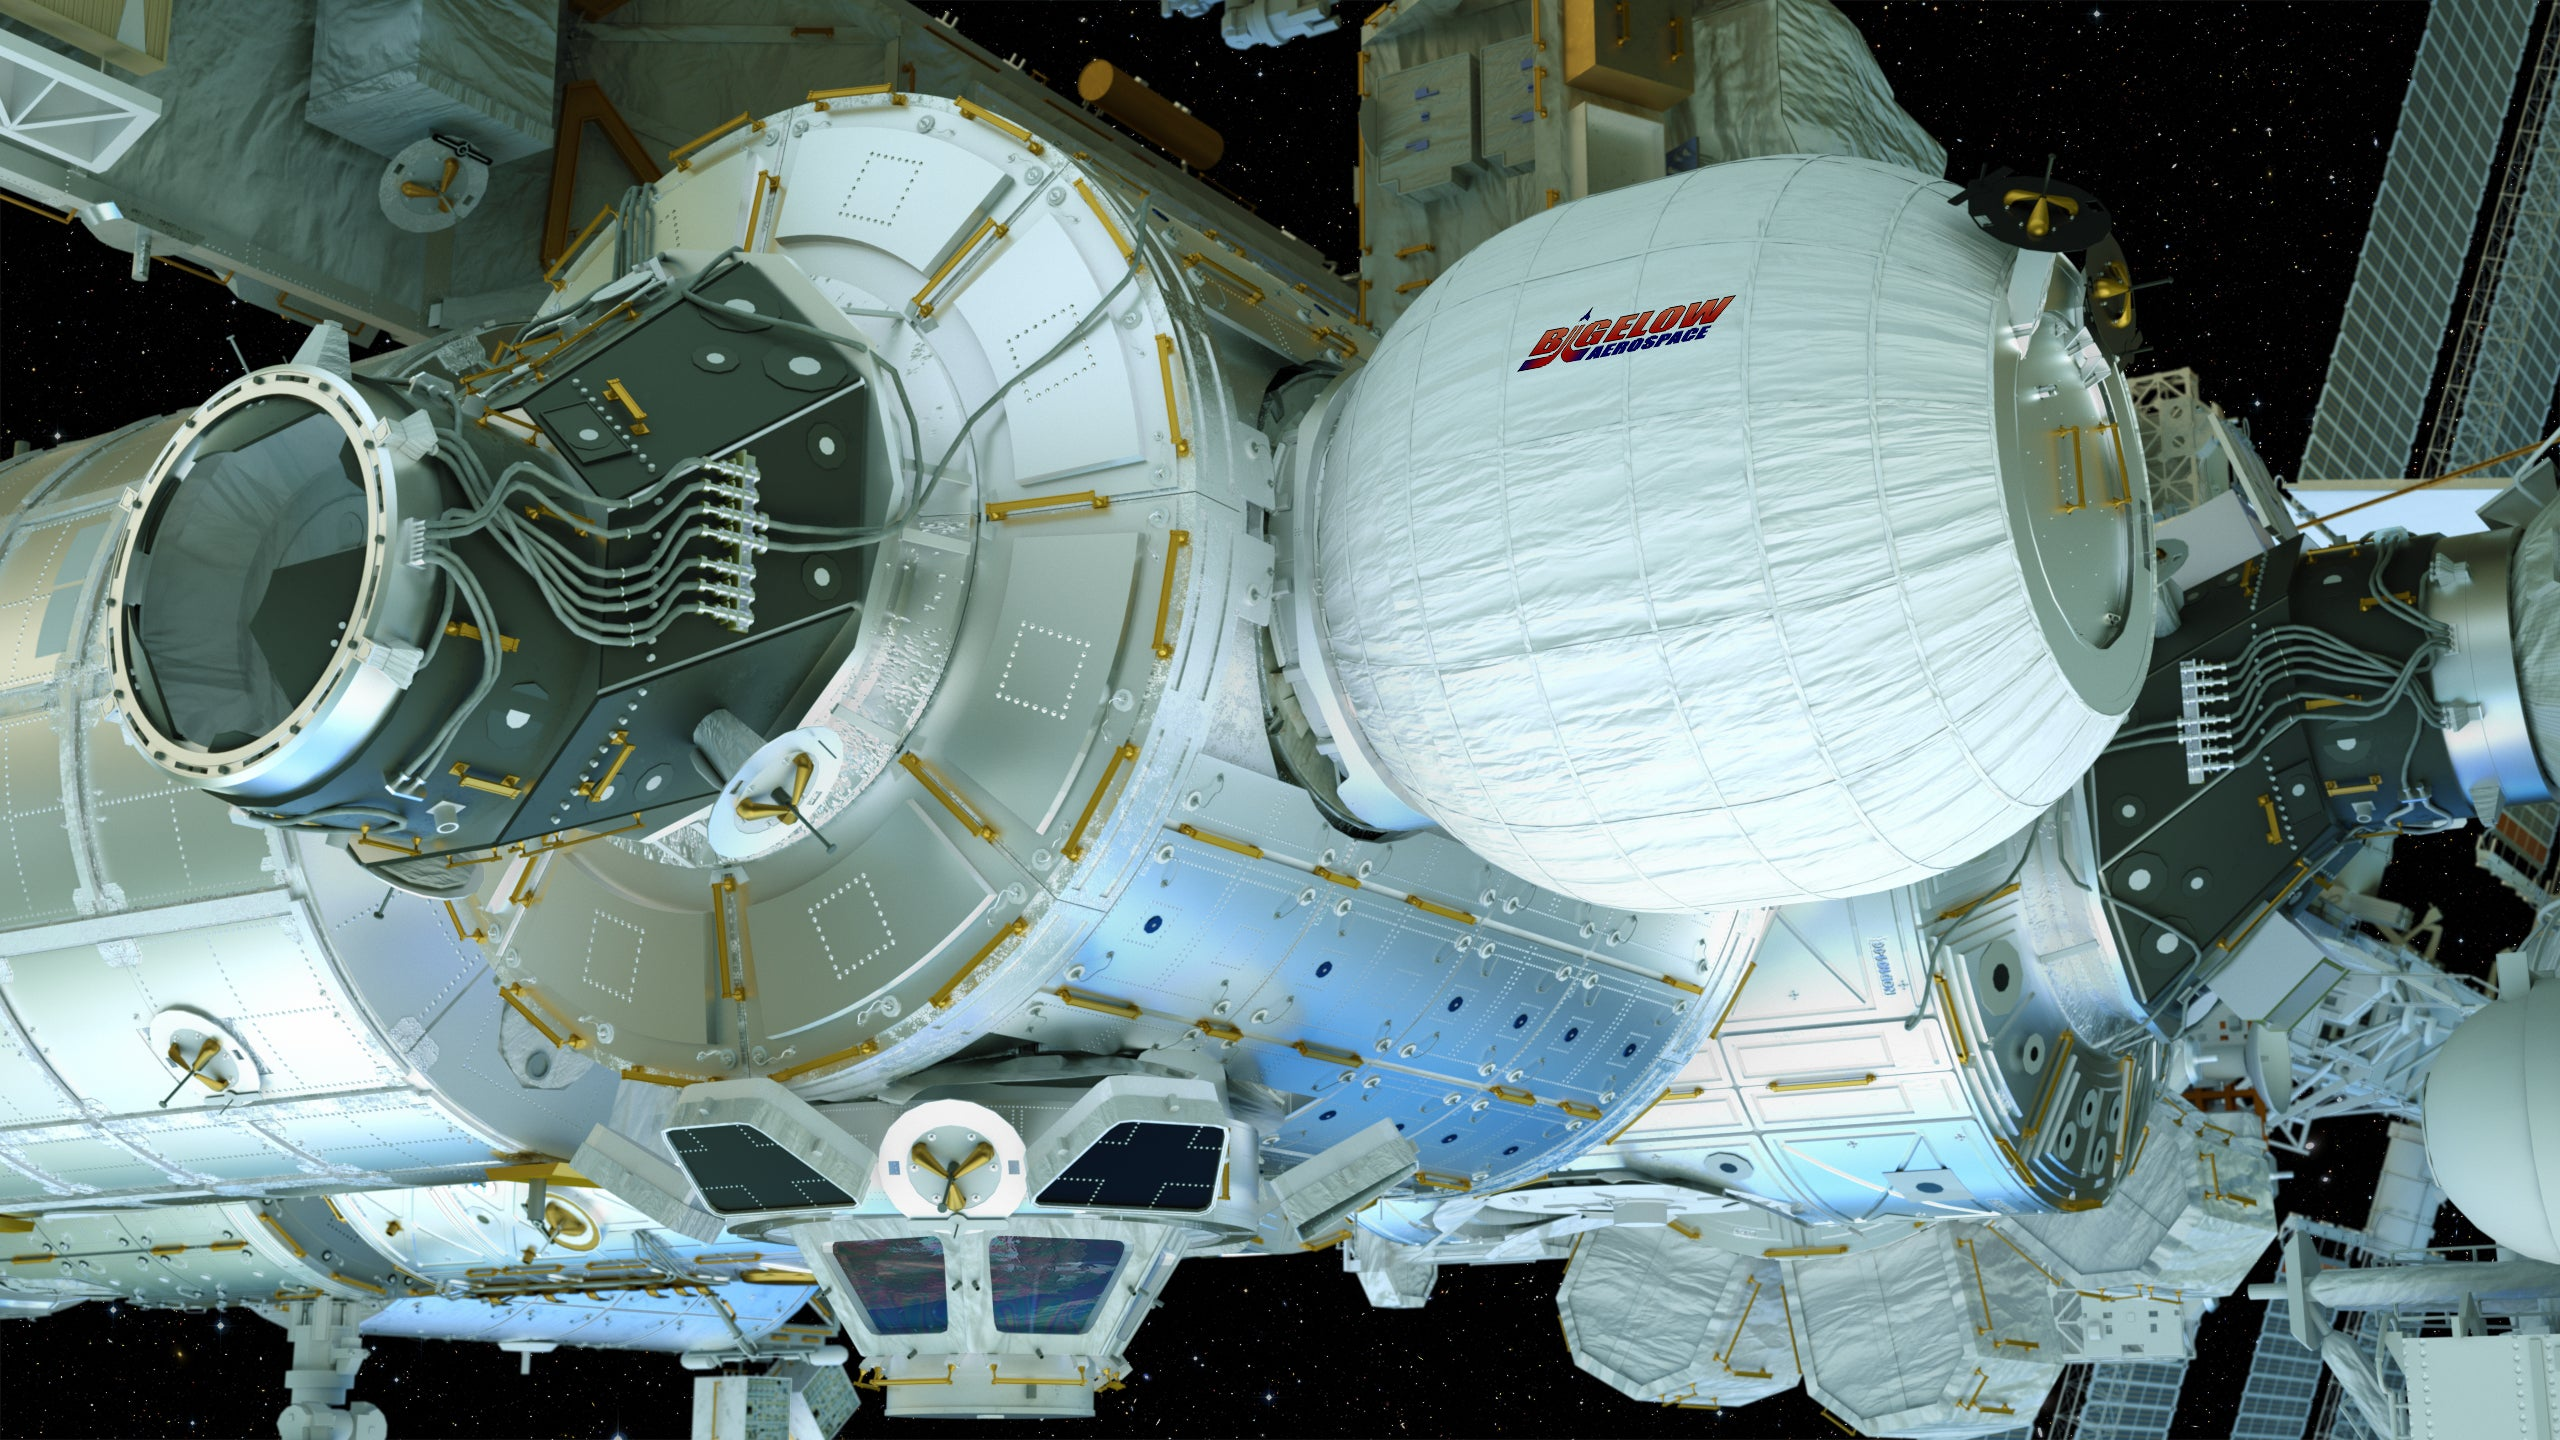 beam inflatable-space-house livestream nasa space